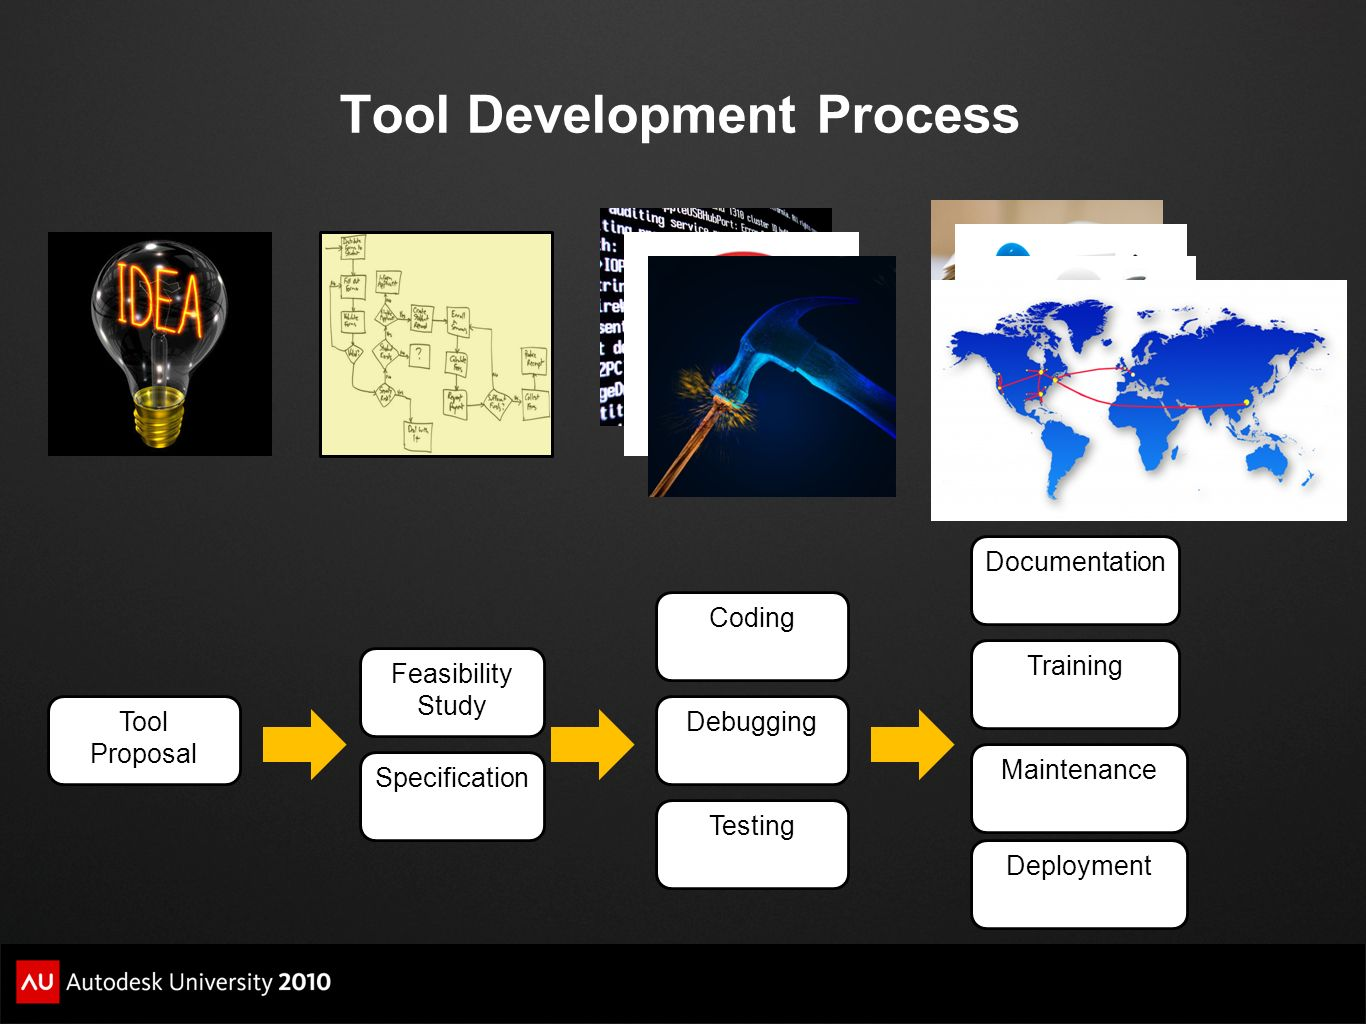 Tool Development Process